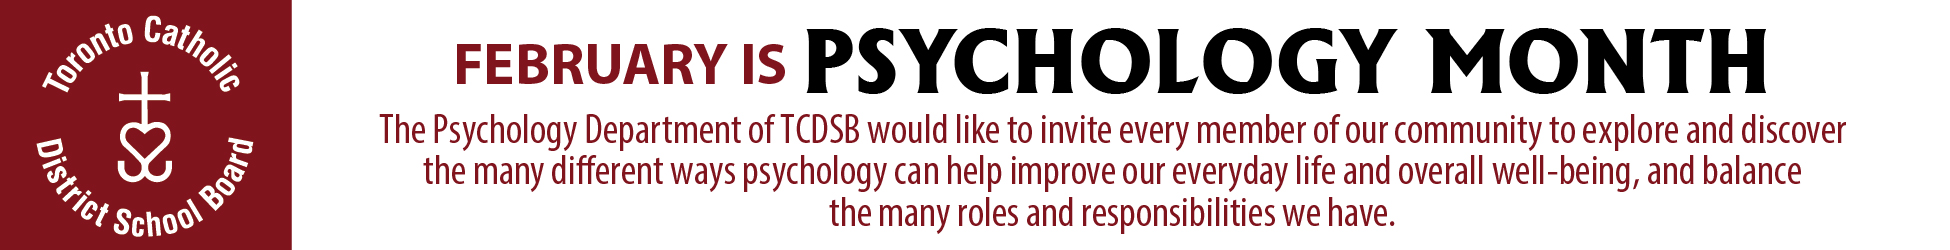 TCDSB February Psychology Month 2019